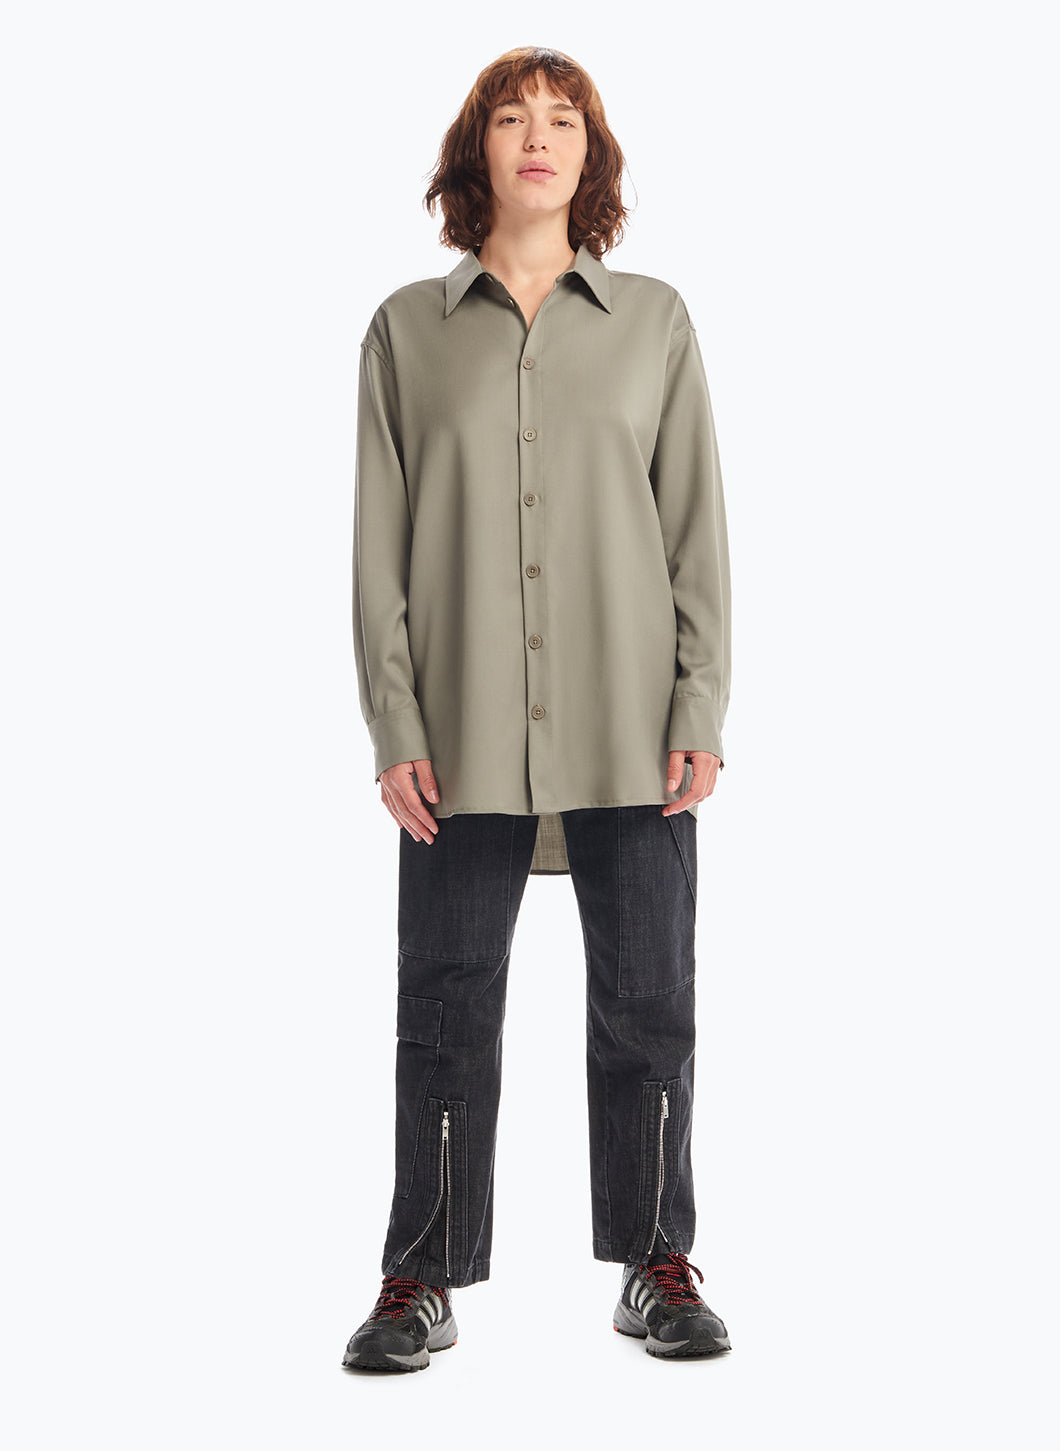 Overshirt with Classic Collar in Clay Cool Wool